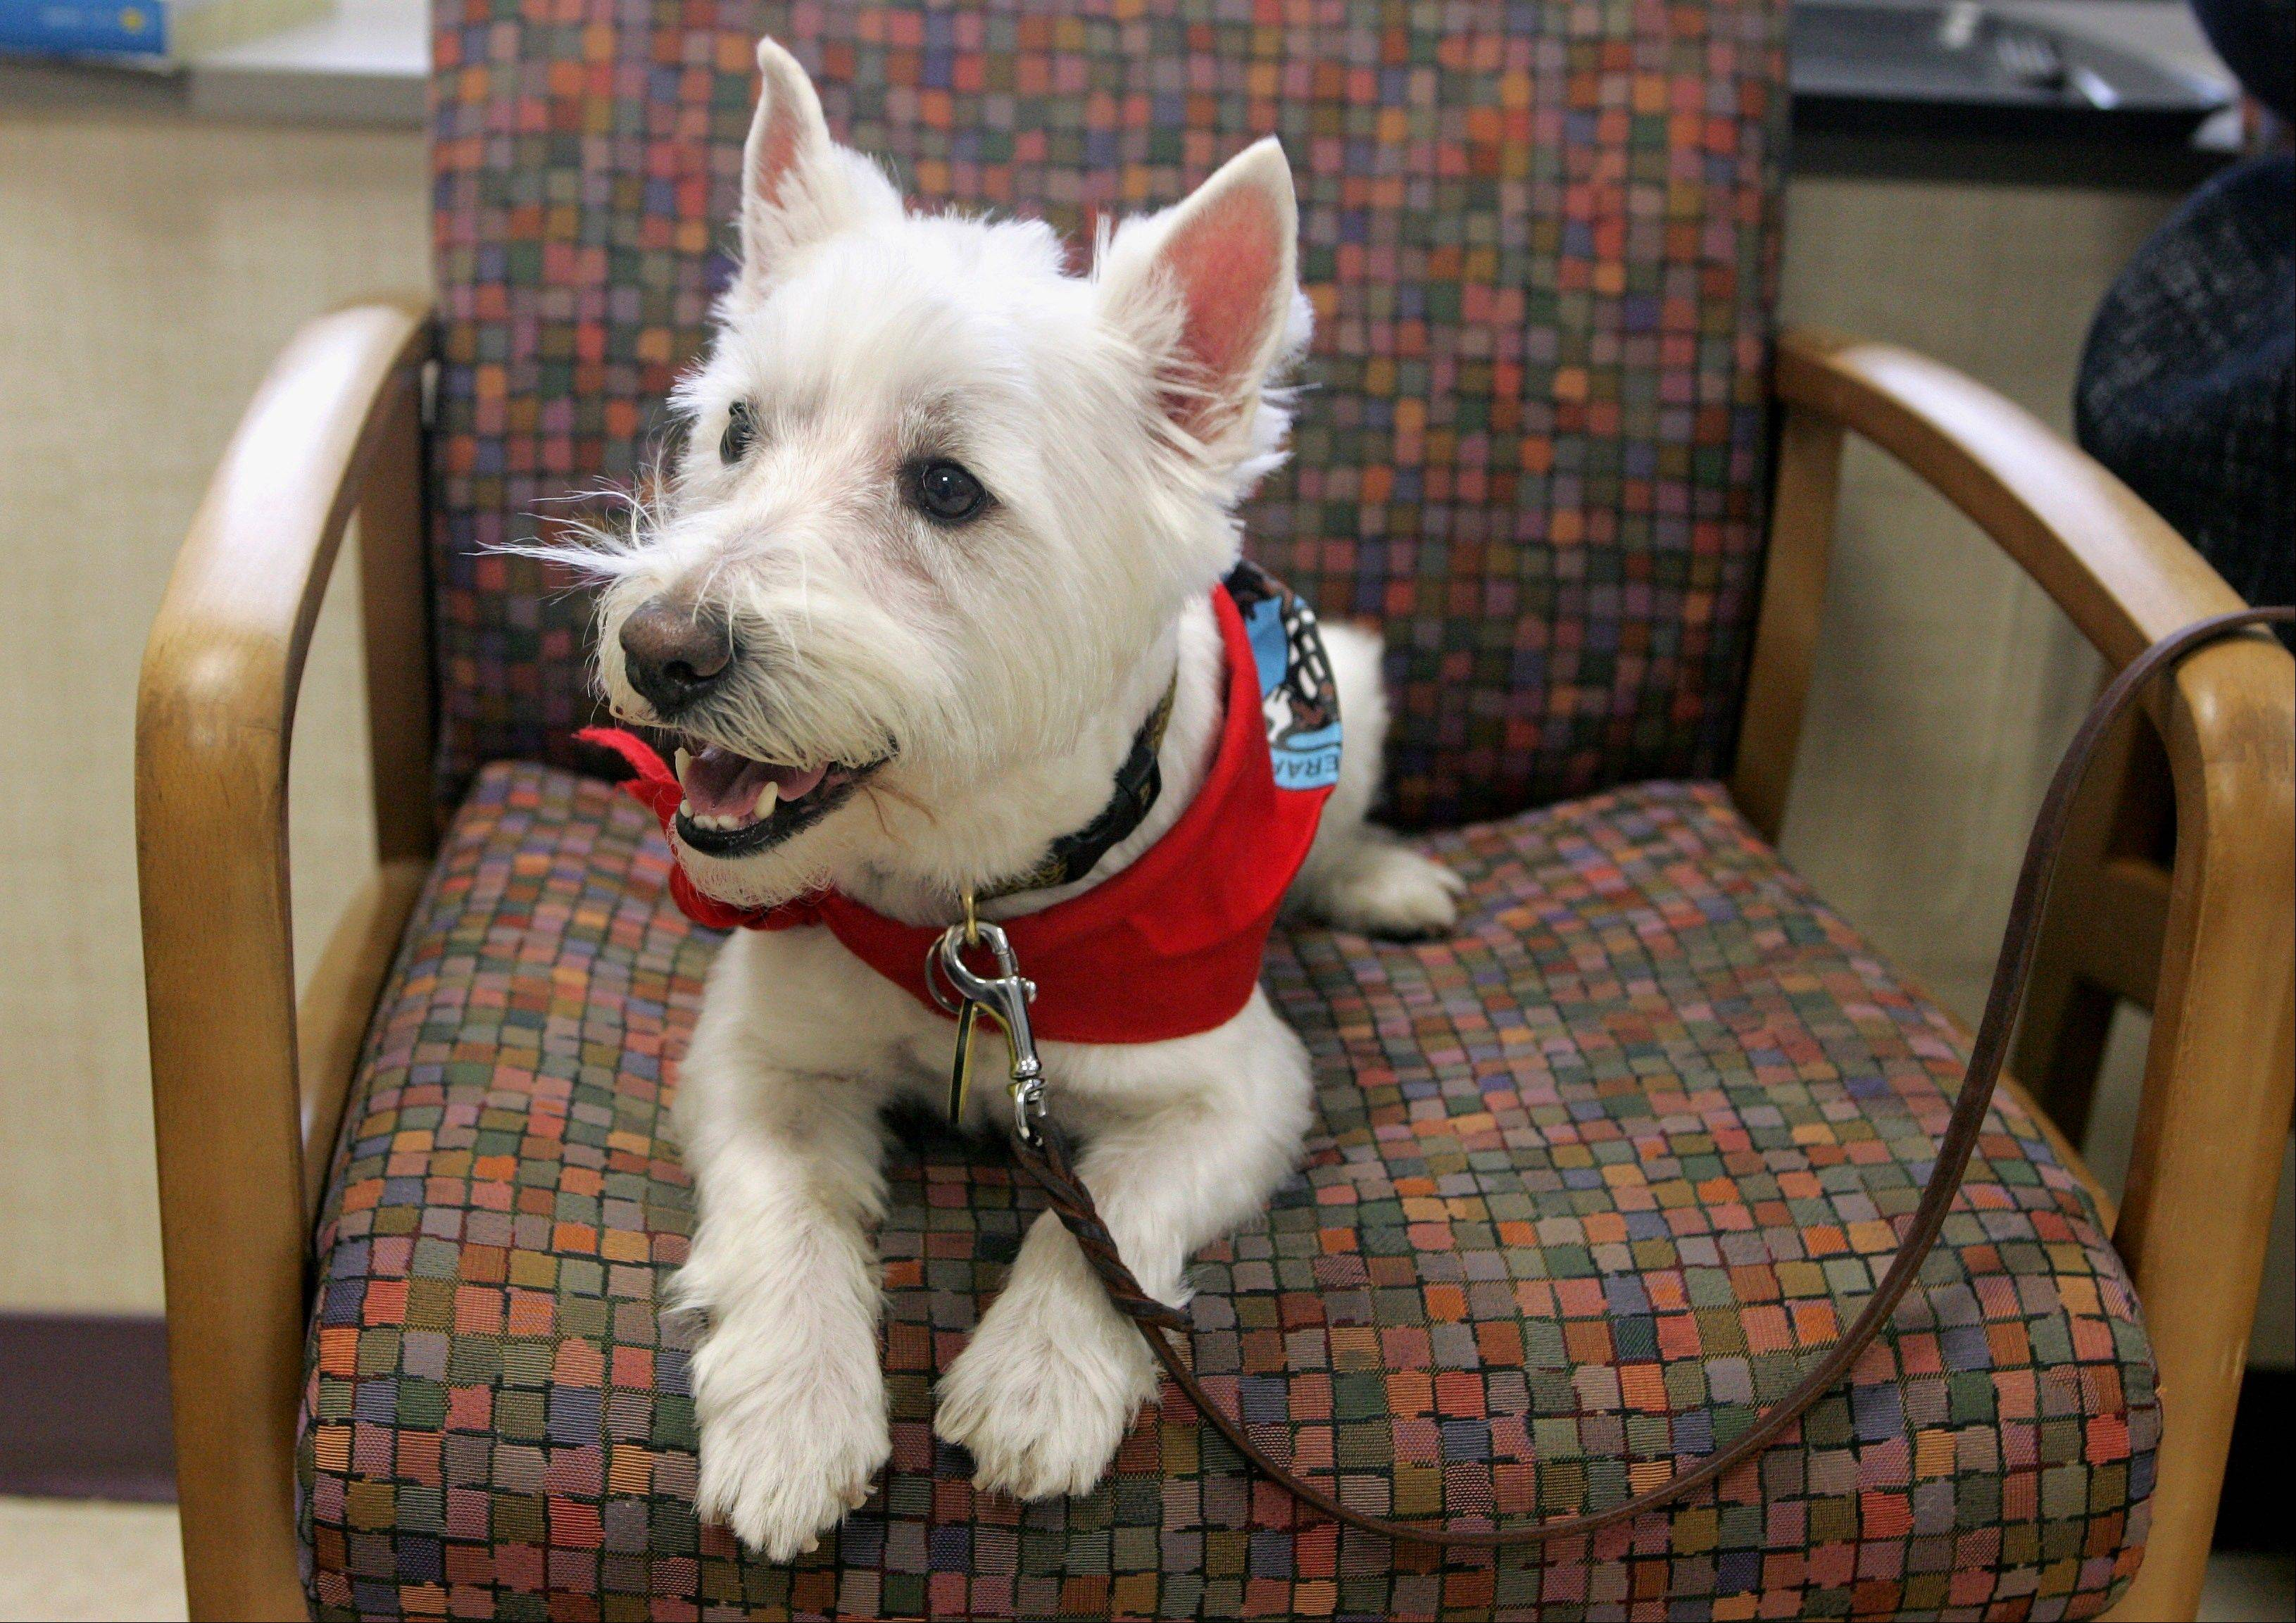 Ozzie visits Rockford Memorial Hospital in Rockford as the the hospital kicks off its Loving Tails animal therapy program that Ozzie and his owner, Karen Stephenson, in which they will participate.